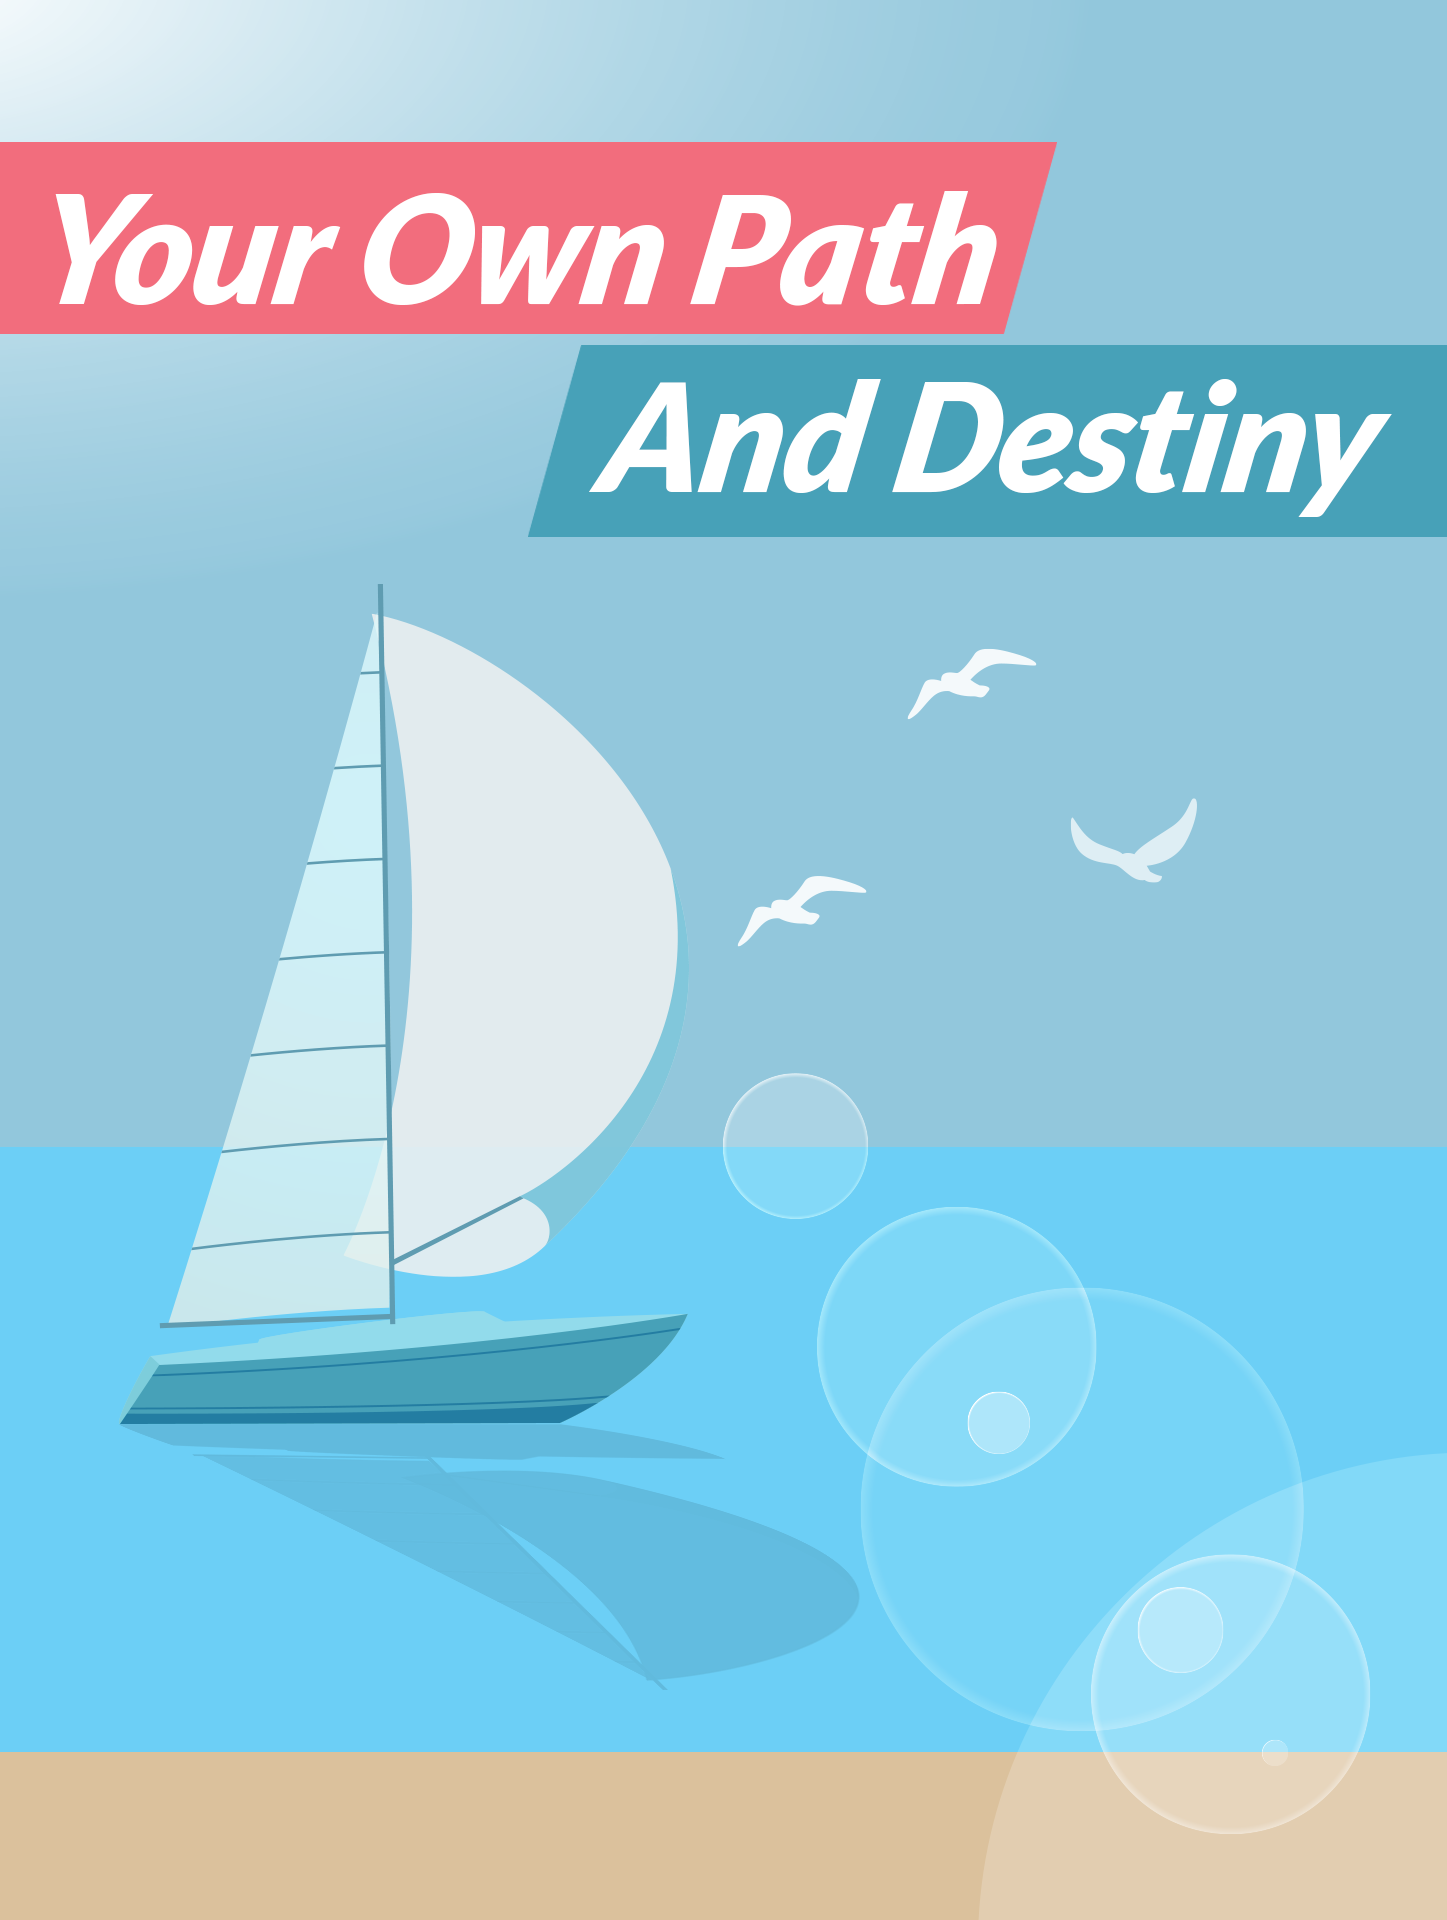 Your Own Path And Destiny Ebook's Ebook Image